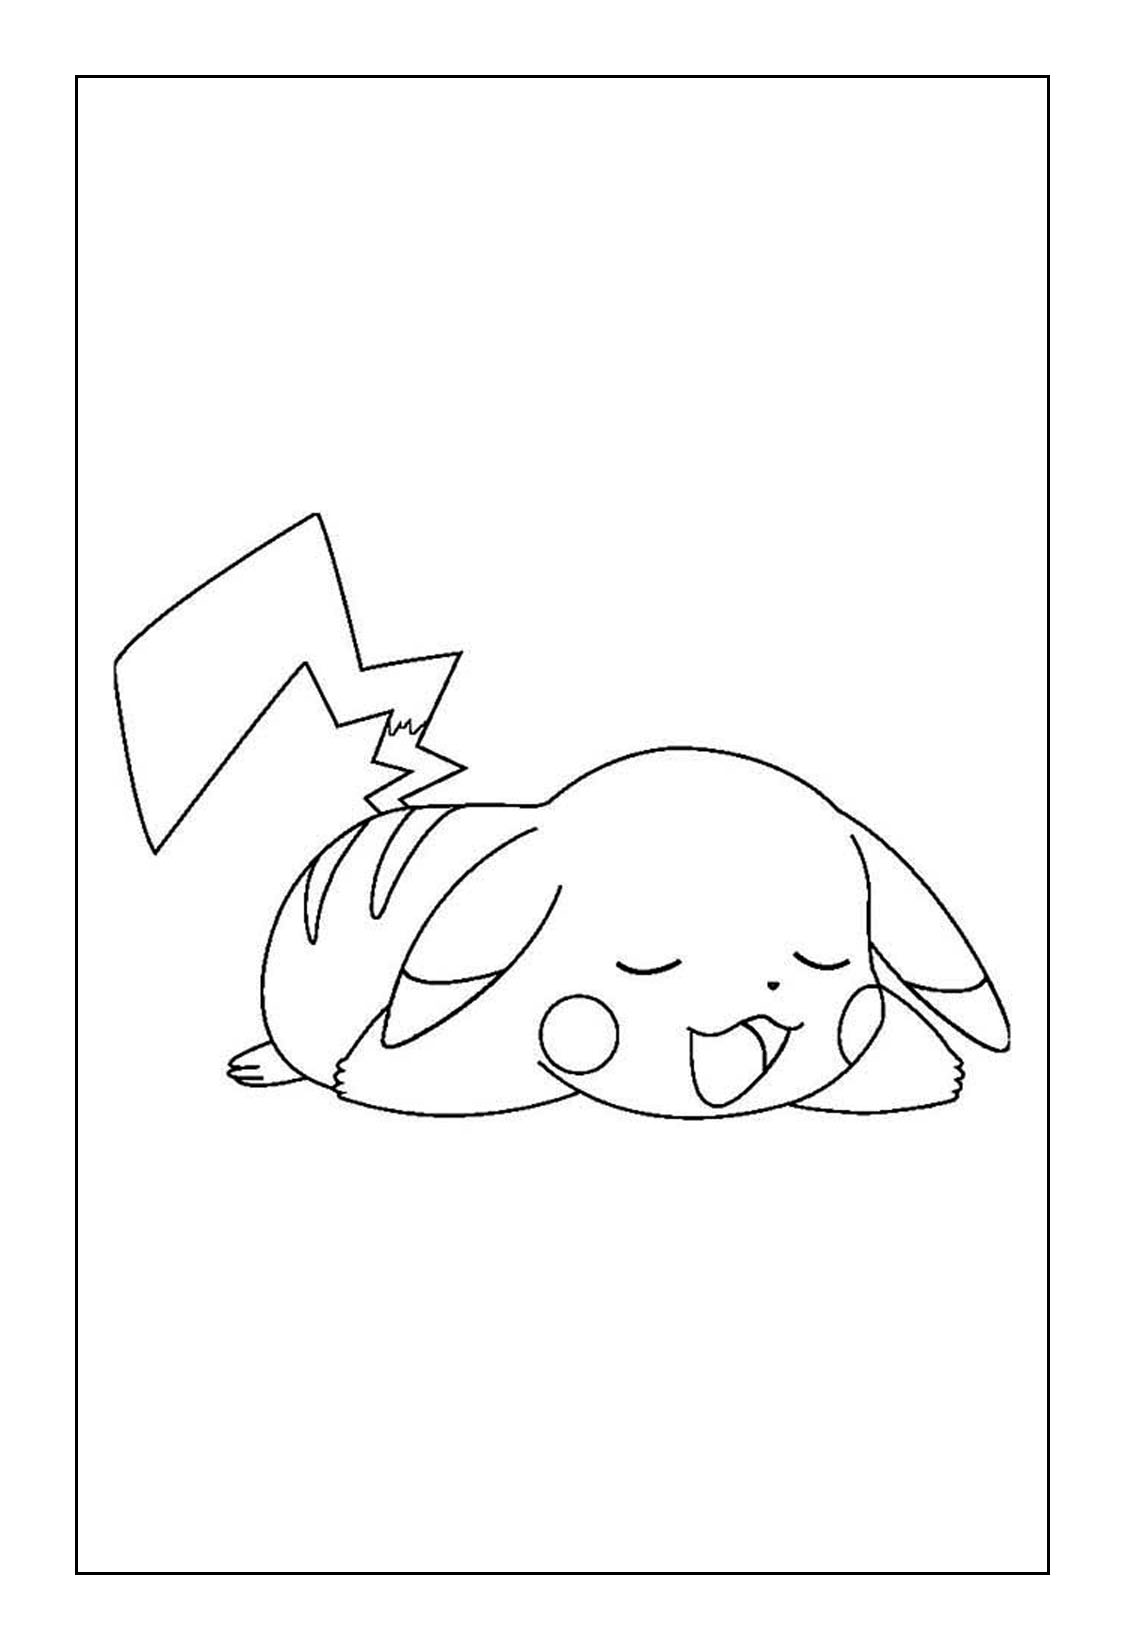 Pikachu Coloring Pages Coloring Rocks